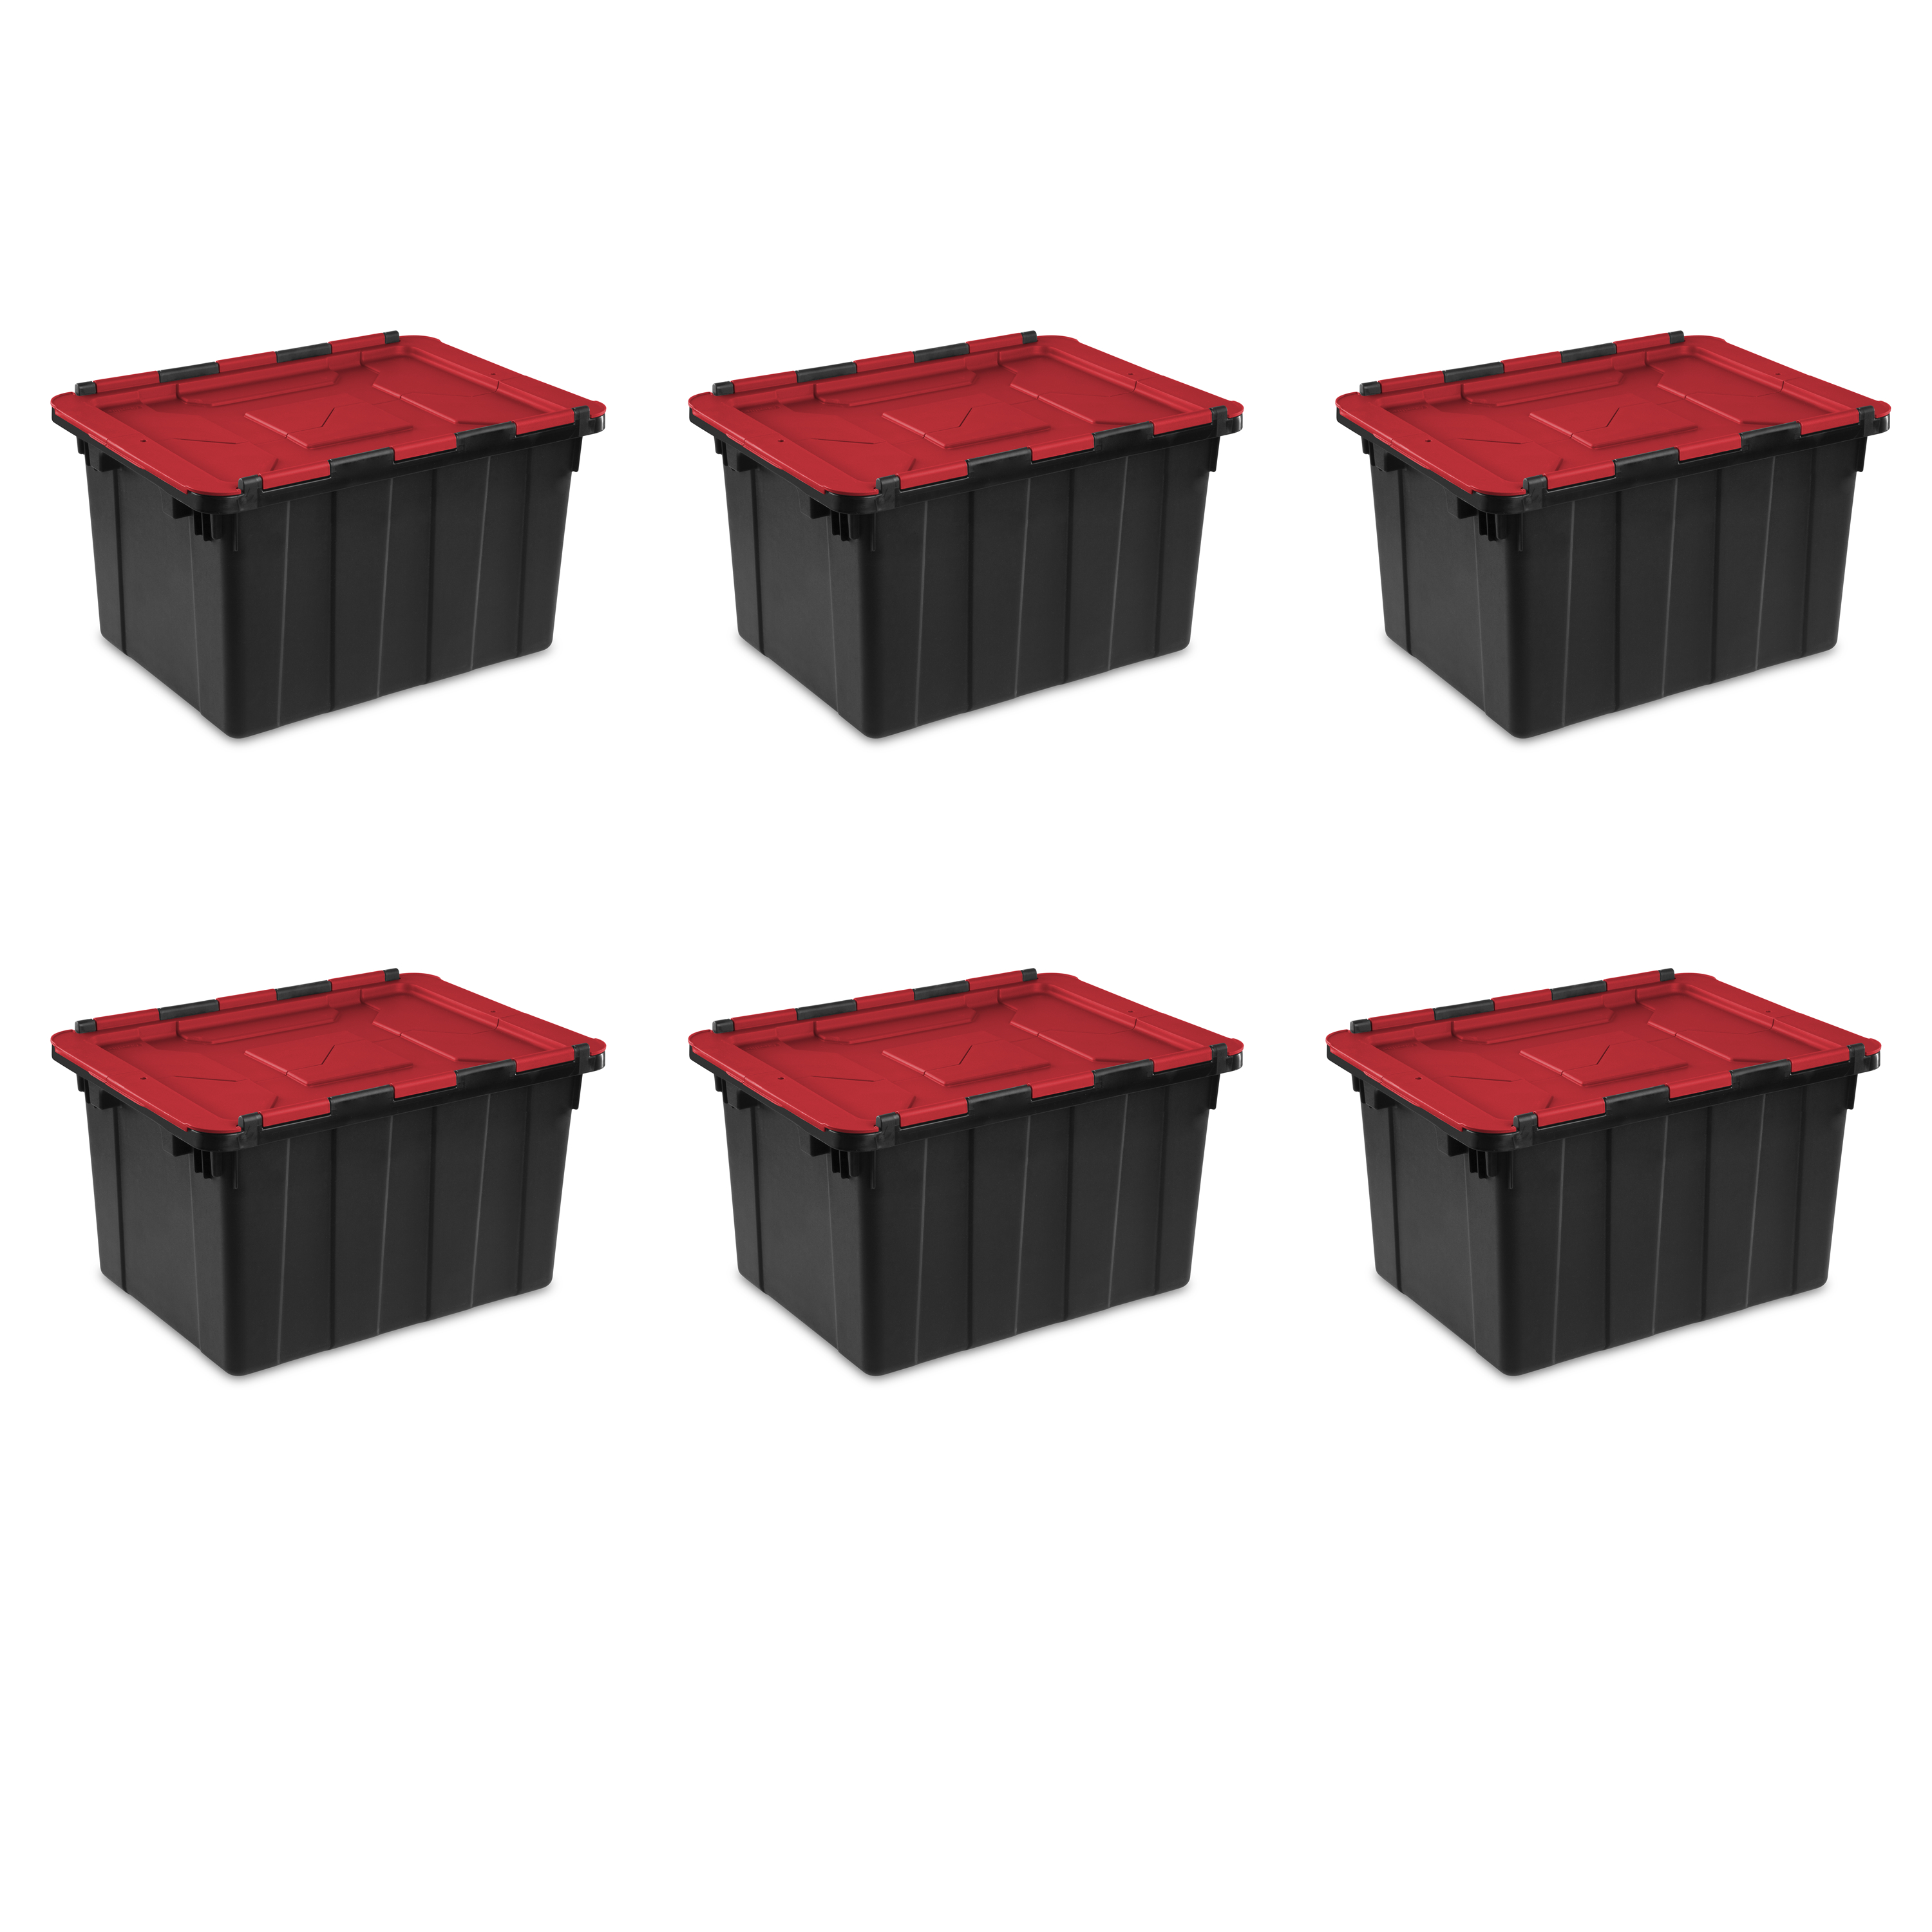 Sterilite, 12 Gal./45 L Hinged Lid Industrial Tote, Case of 6